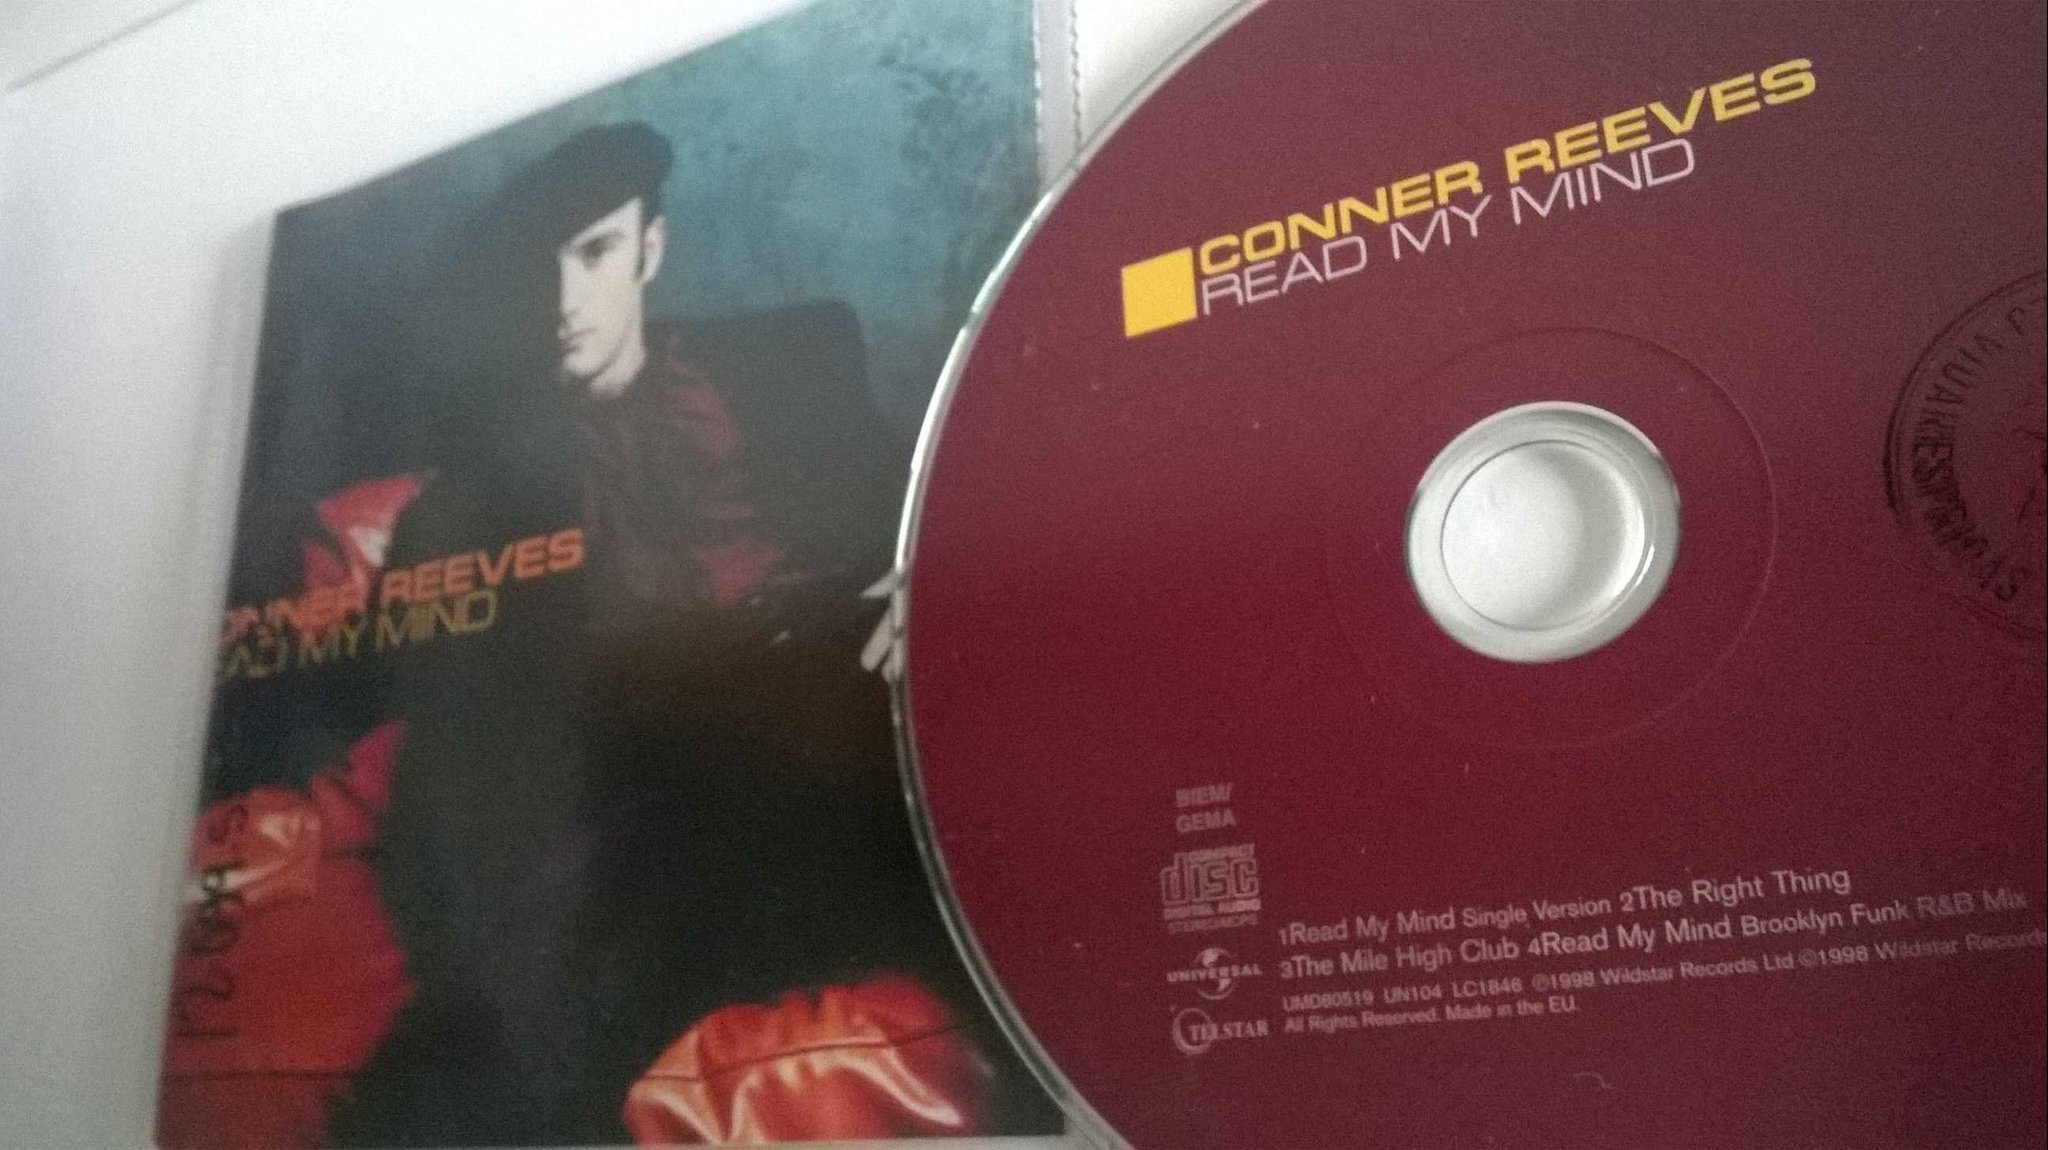 Conner Reeves - Read my mind, single CD